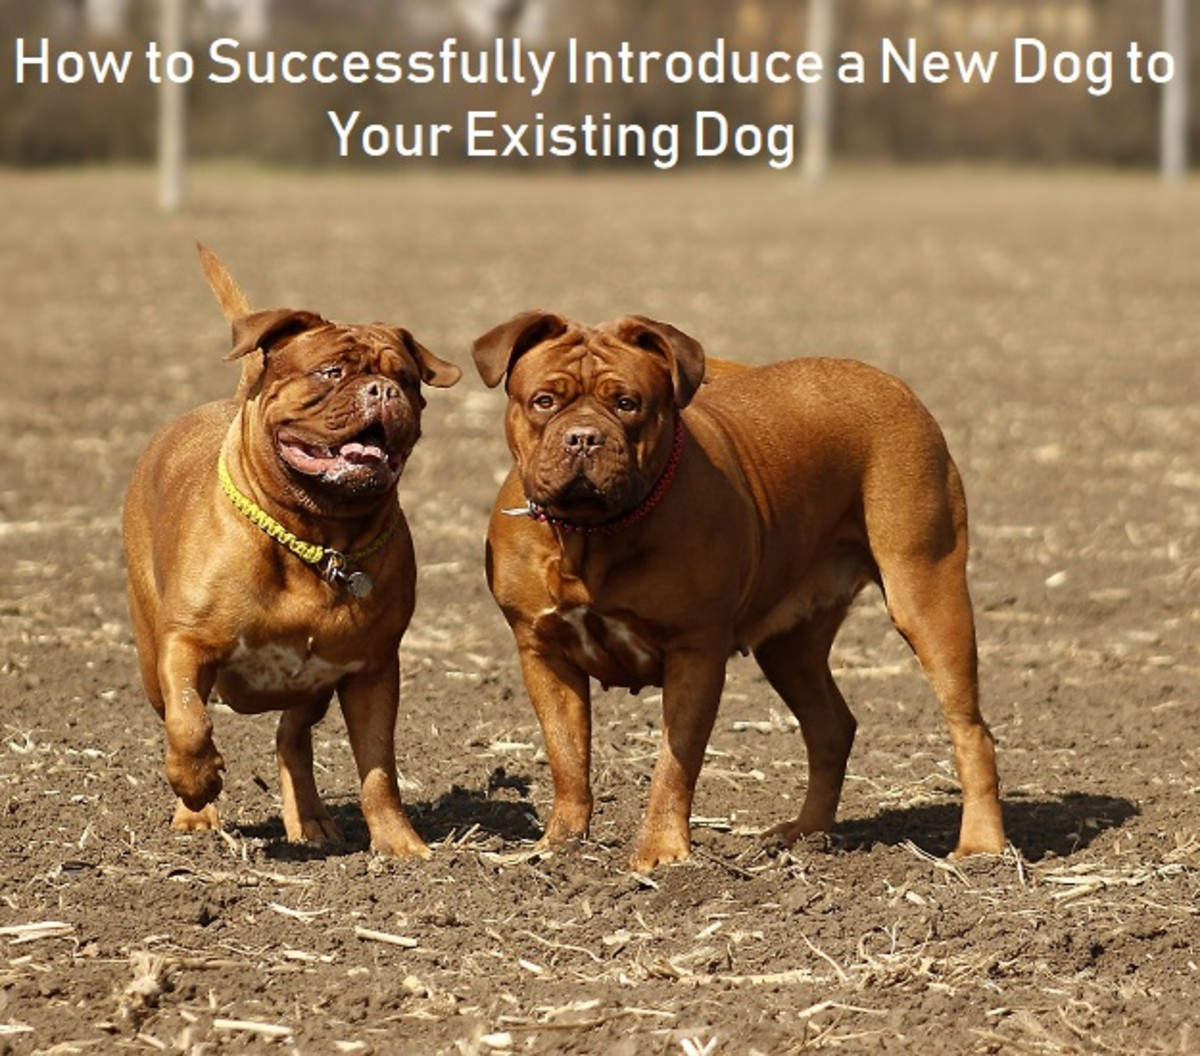 How to Successfully Introduce a New Dog to Your Existing Dog